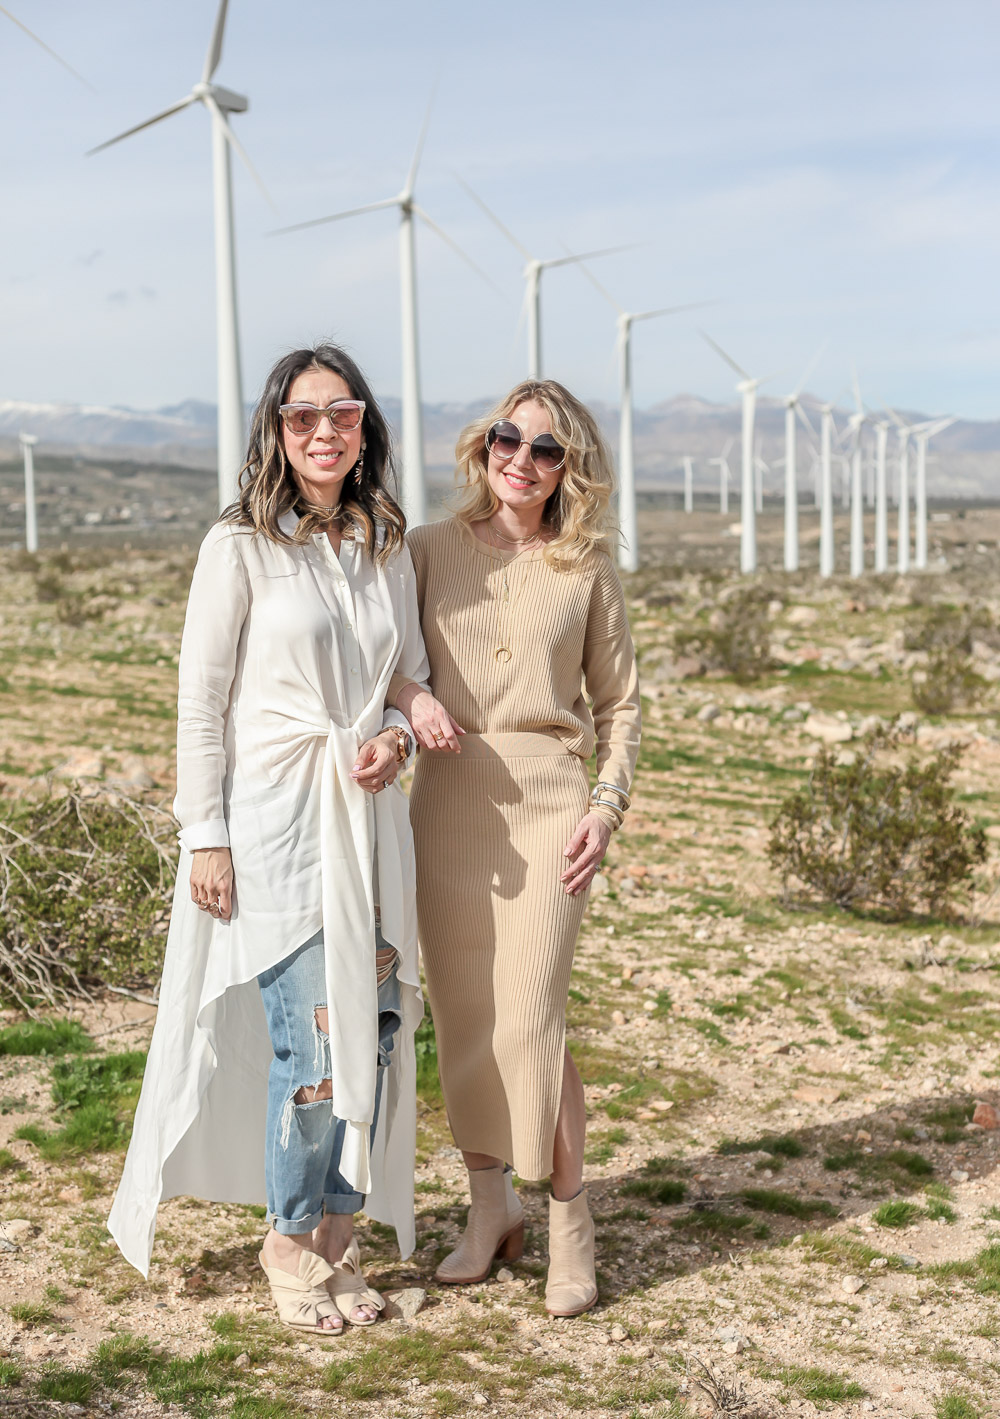 palmer harding waterfall shirt with ripped boyfriend jeans and charlotte olympia ilona bow mules at palms springs wind farm and blogger friend erin of busbee style